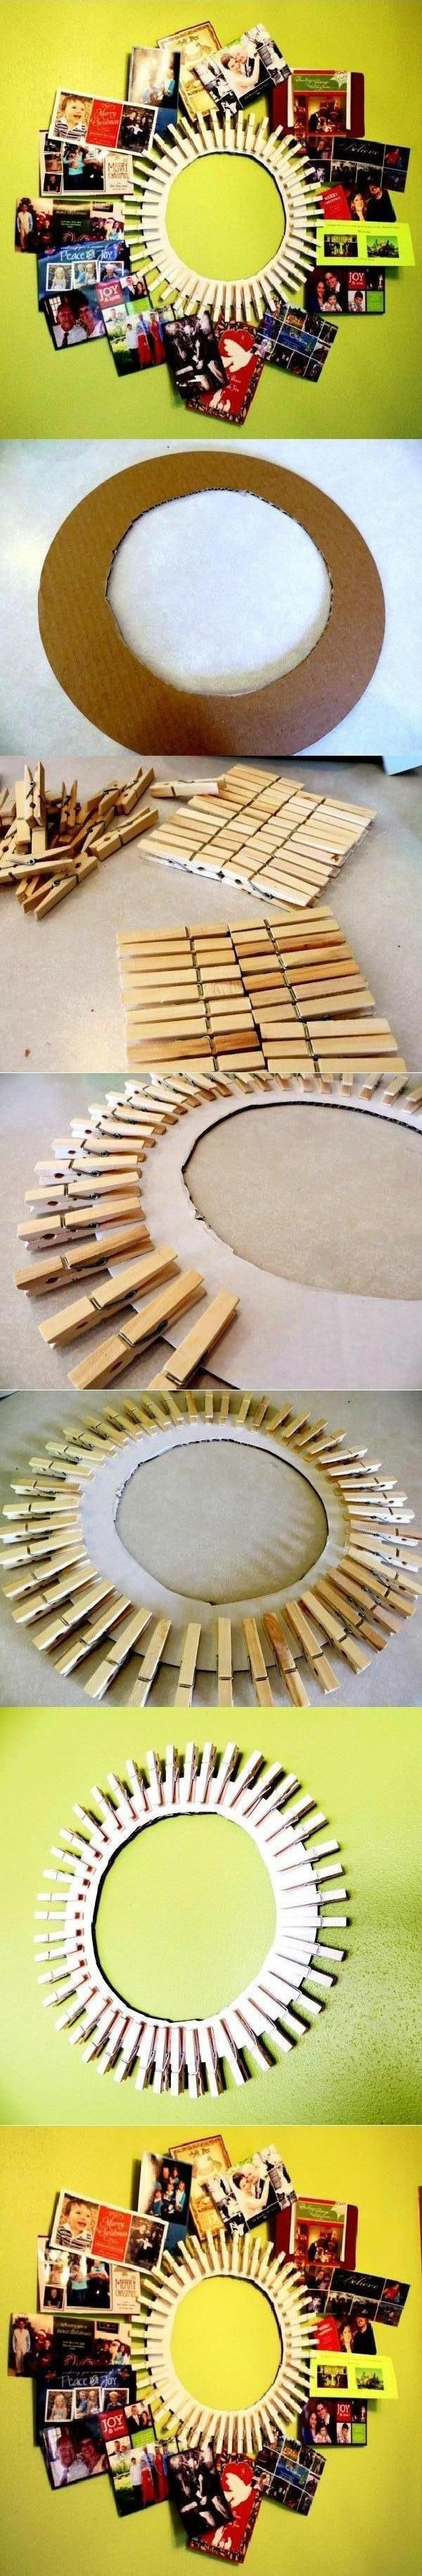 DIY Clothespin Picture Frame DIY Clothespin Picture Frame by diyforever